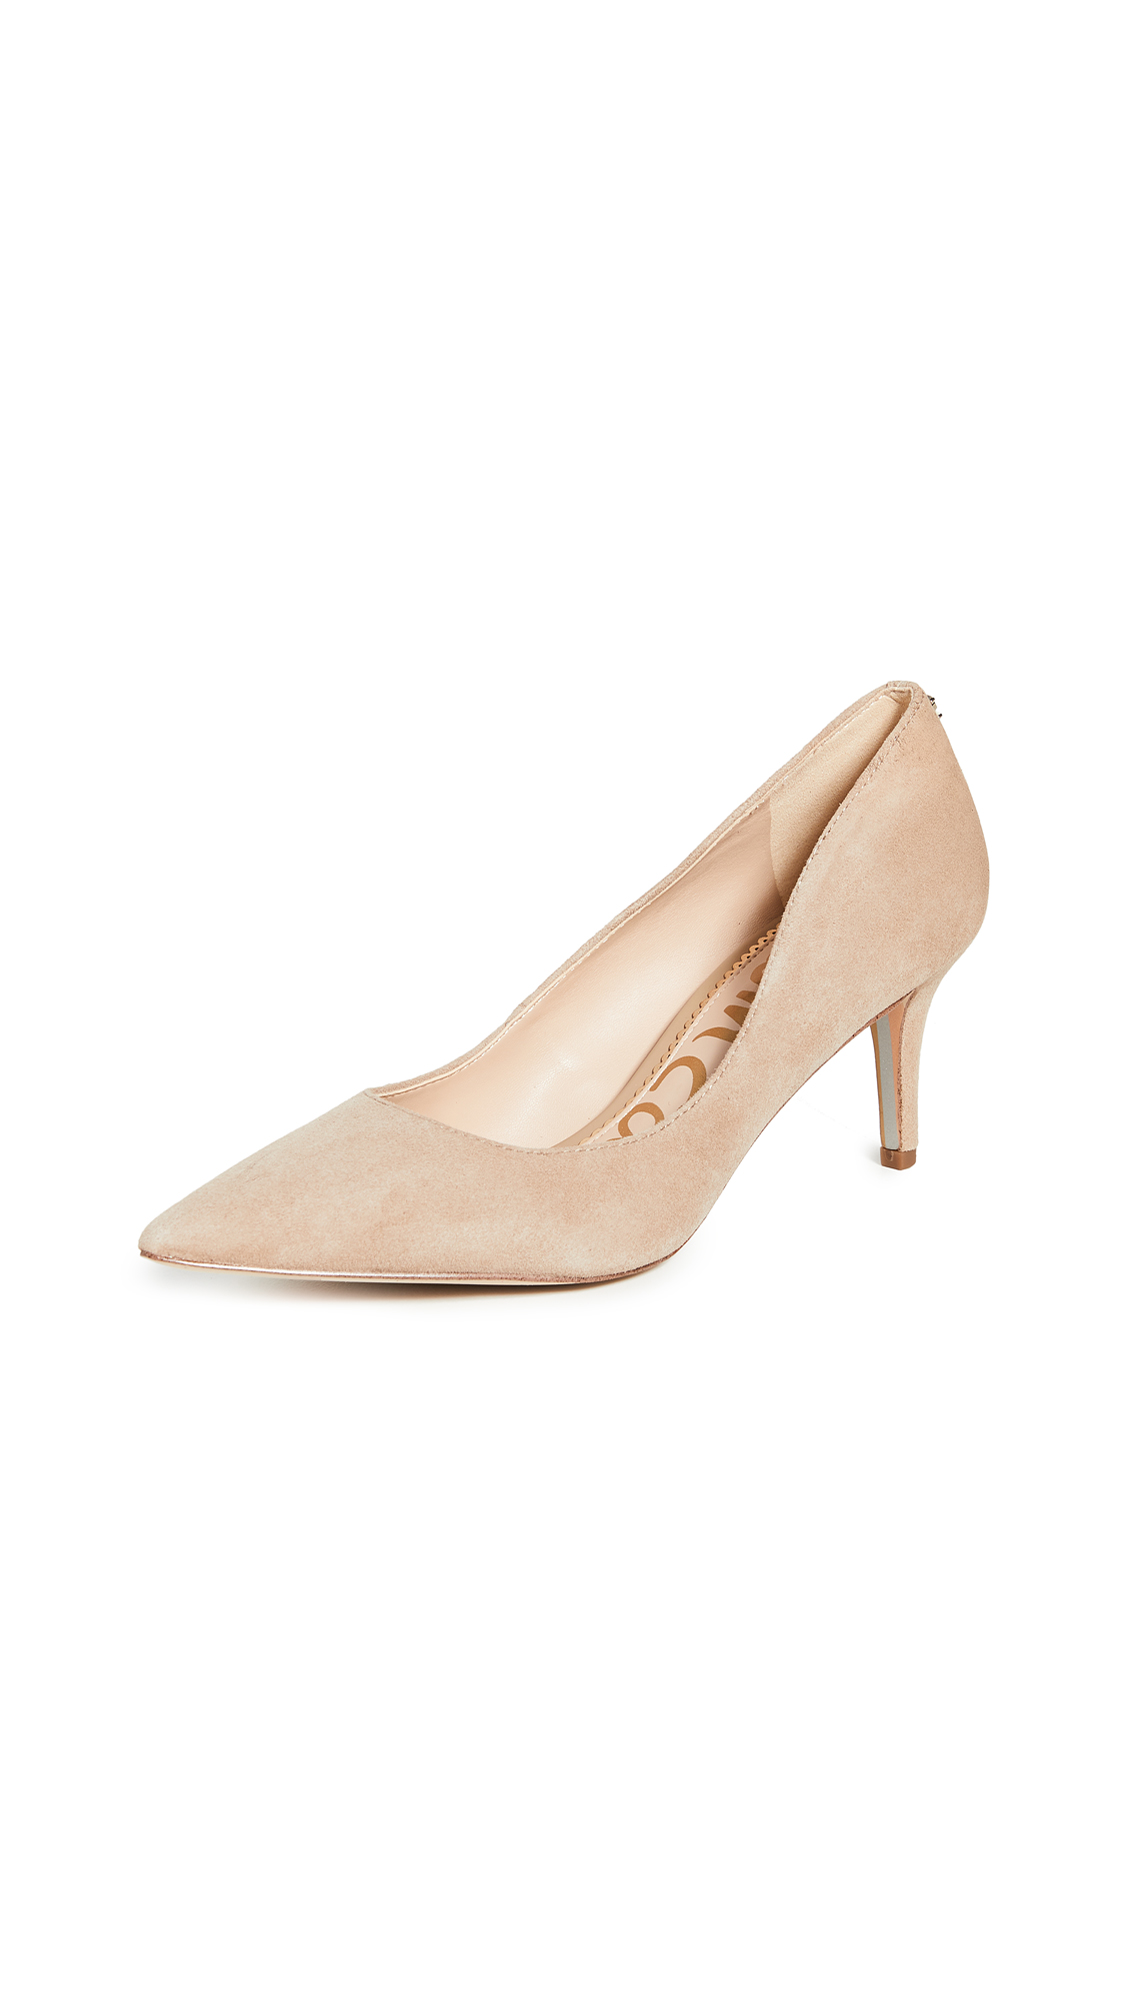 Sam Edelman Jordyn Pumps - 40% Off Sale